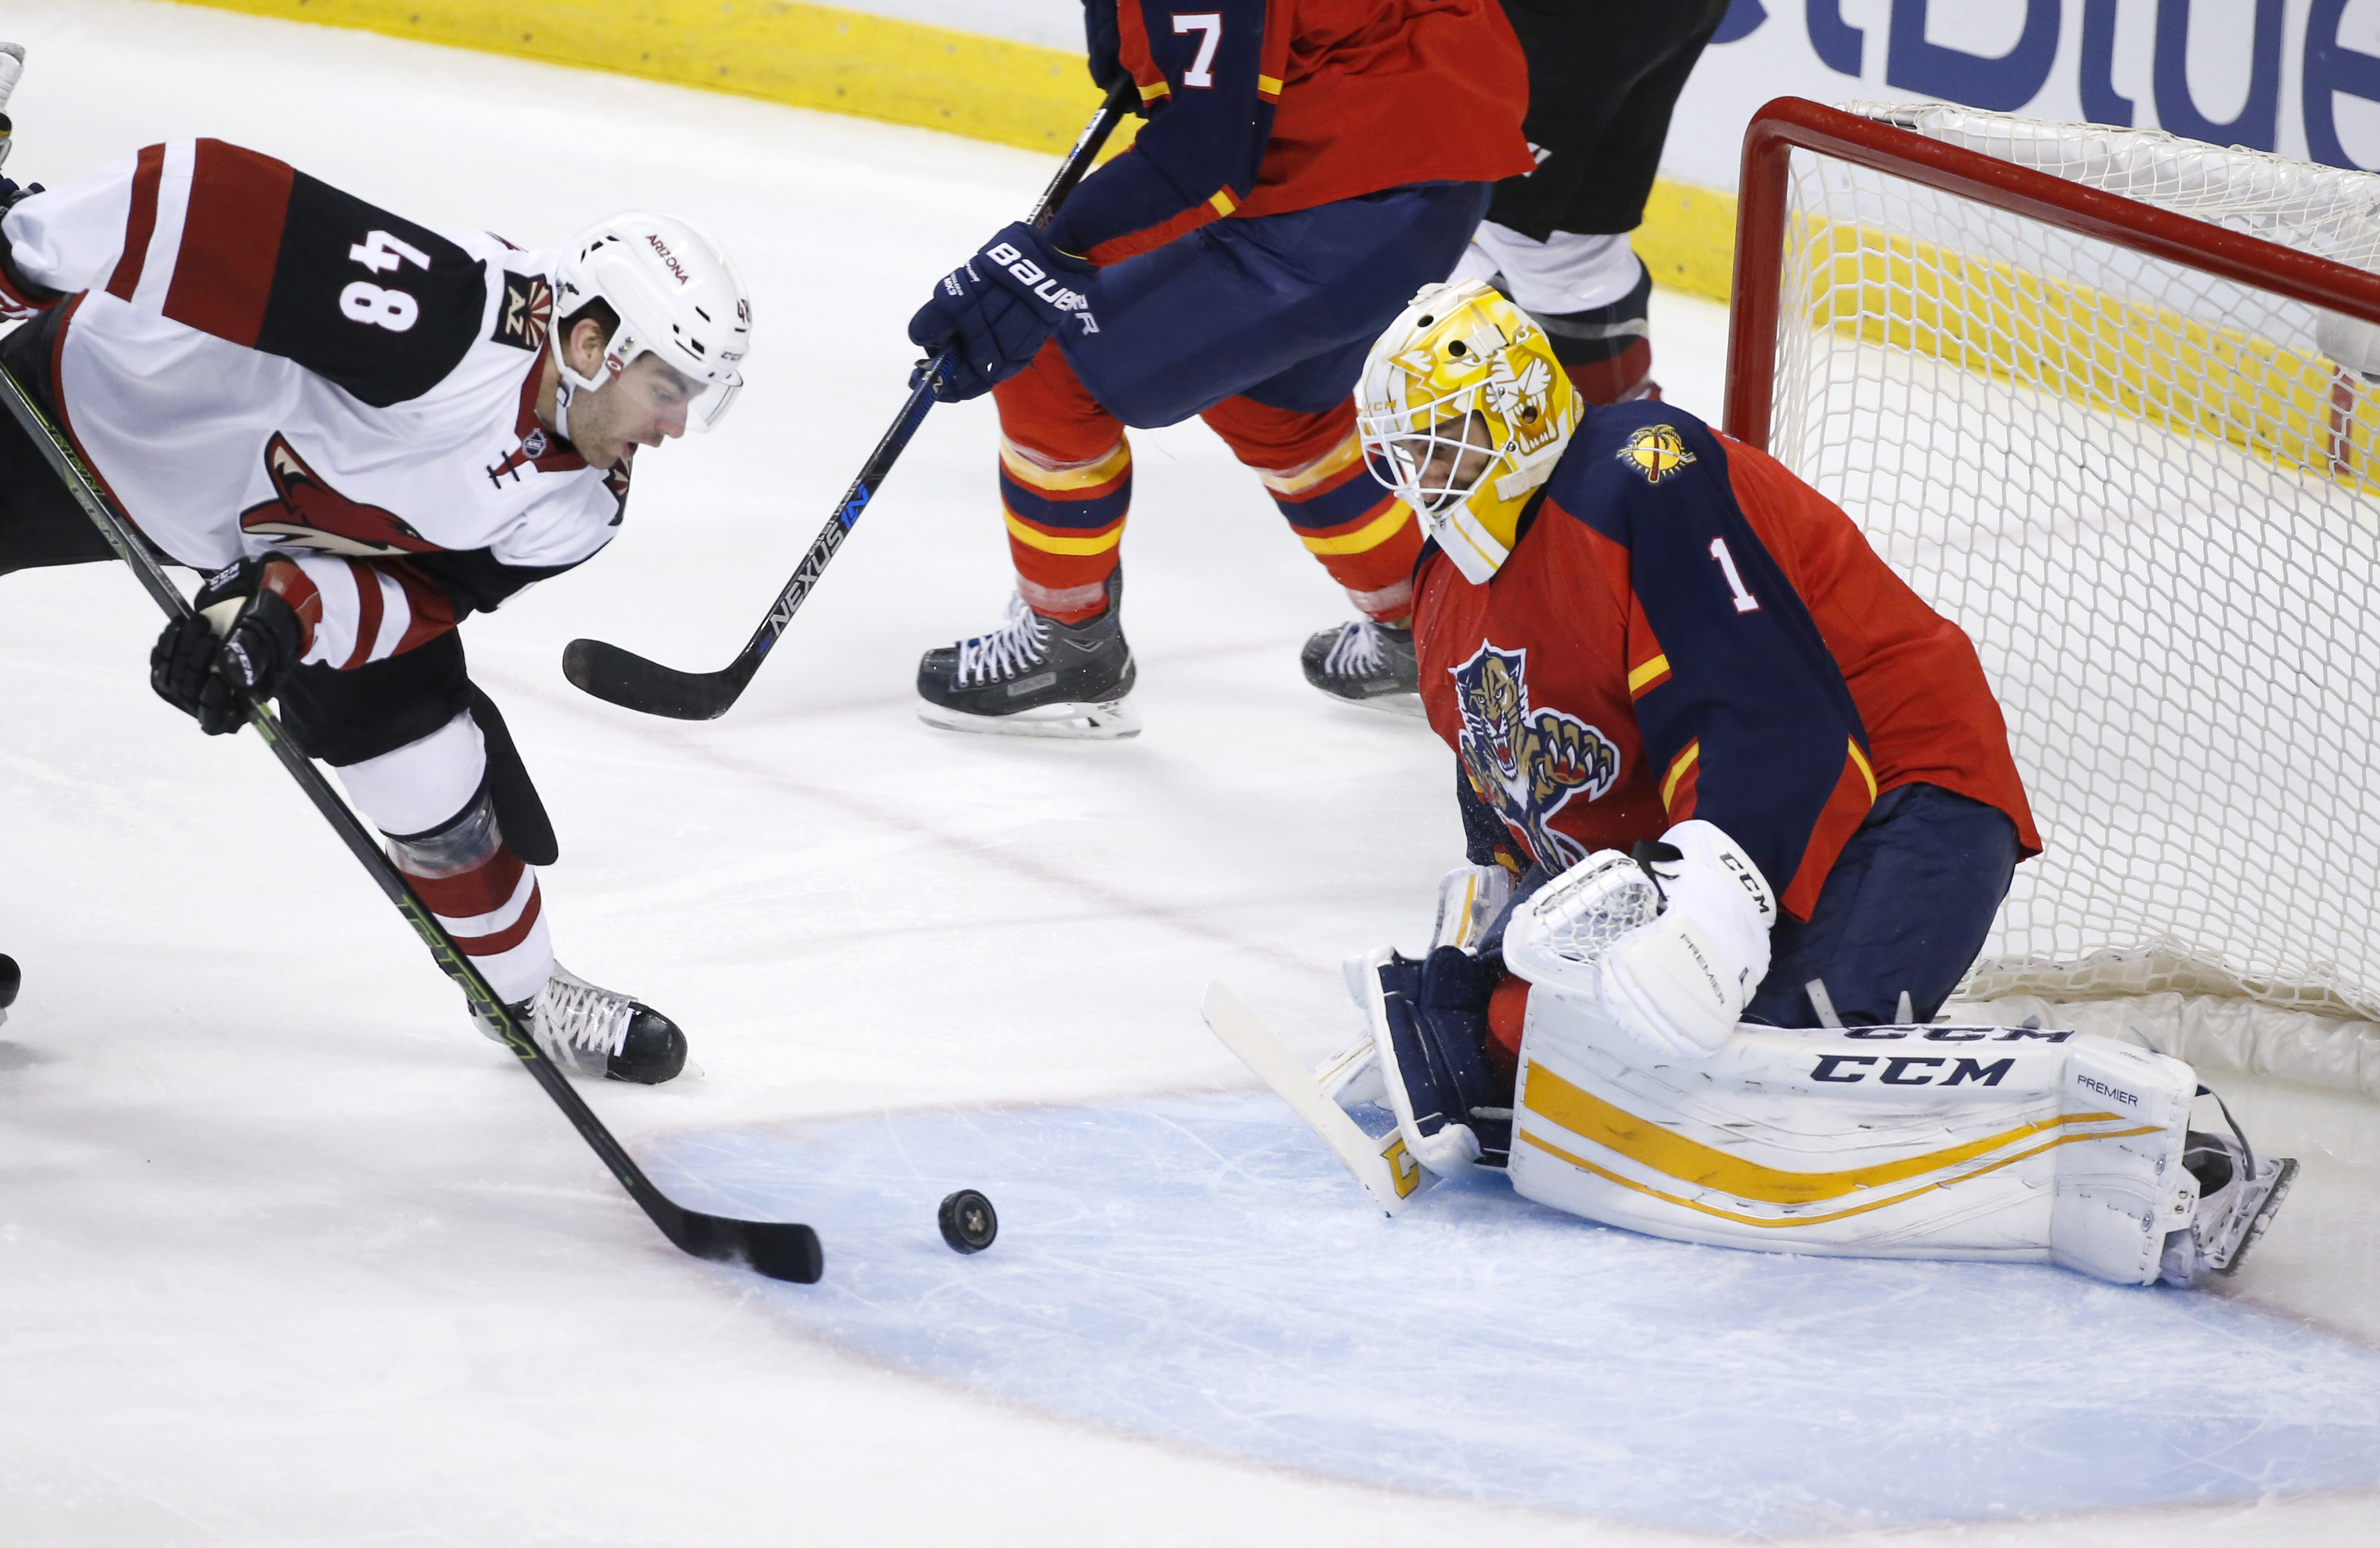 Arizona Coyotes left wing Jordan Martinook (48) attempts a shot against Florida Panthers goalie Roberto Luongo (1) during the first period of an NHL hockey game, Thursday, Feb. 25, 2016 in Sunrise, Fla. (AP Photo/Wilfredo Lee)